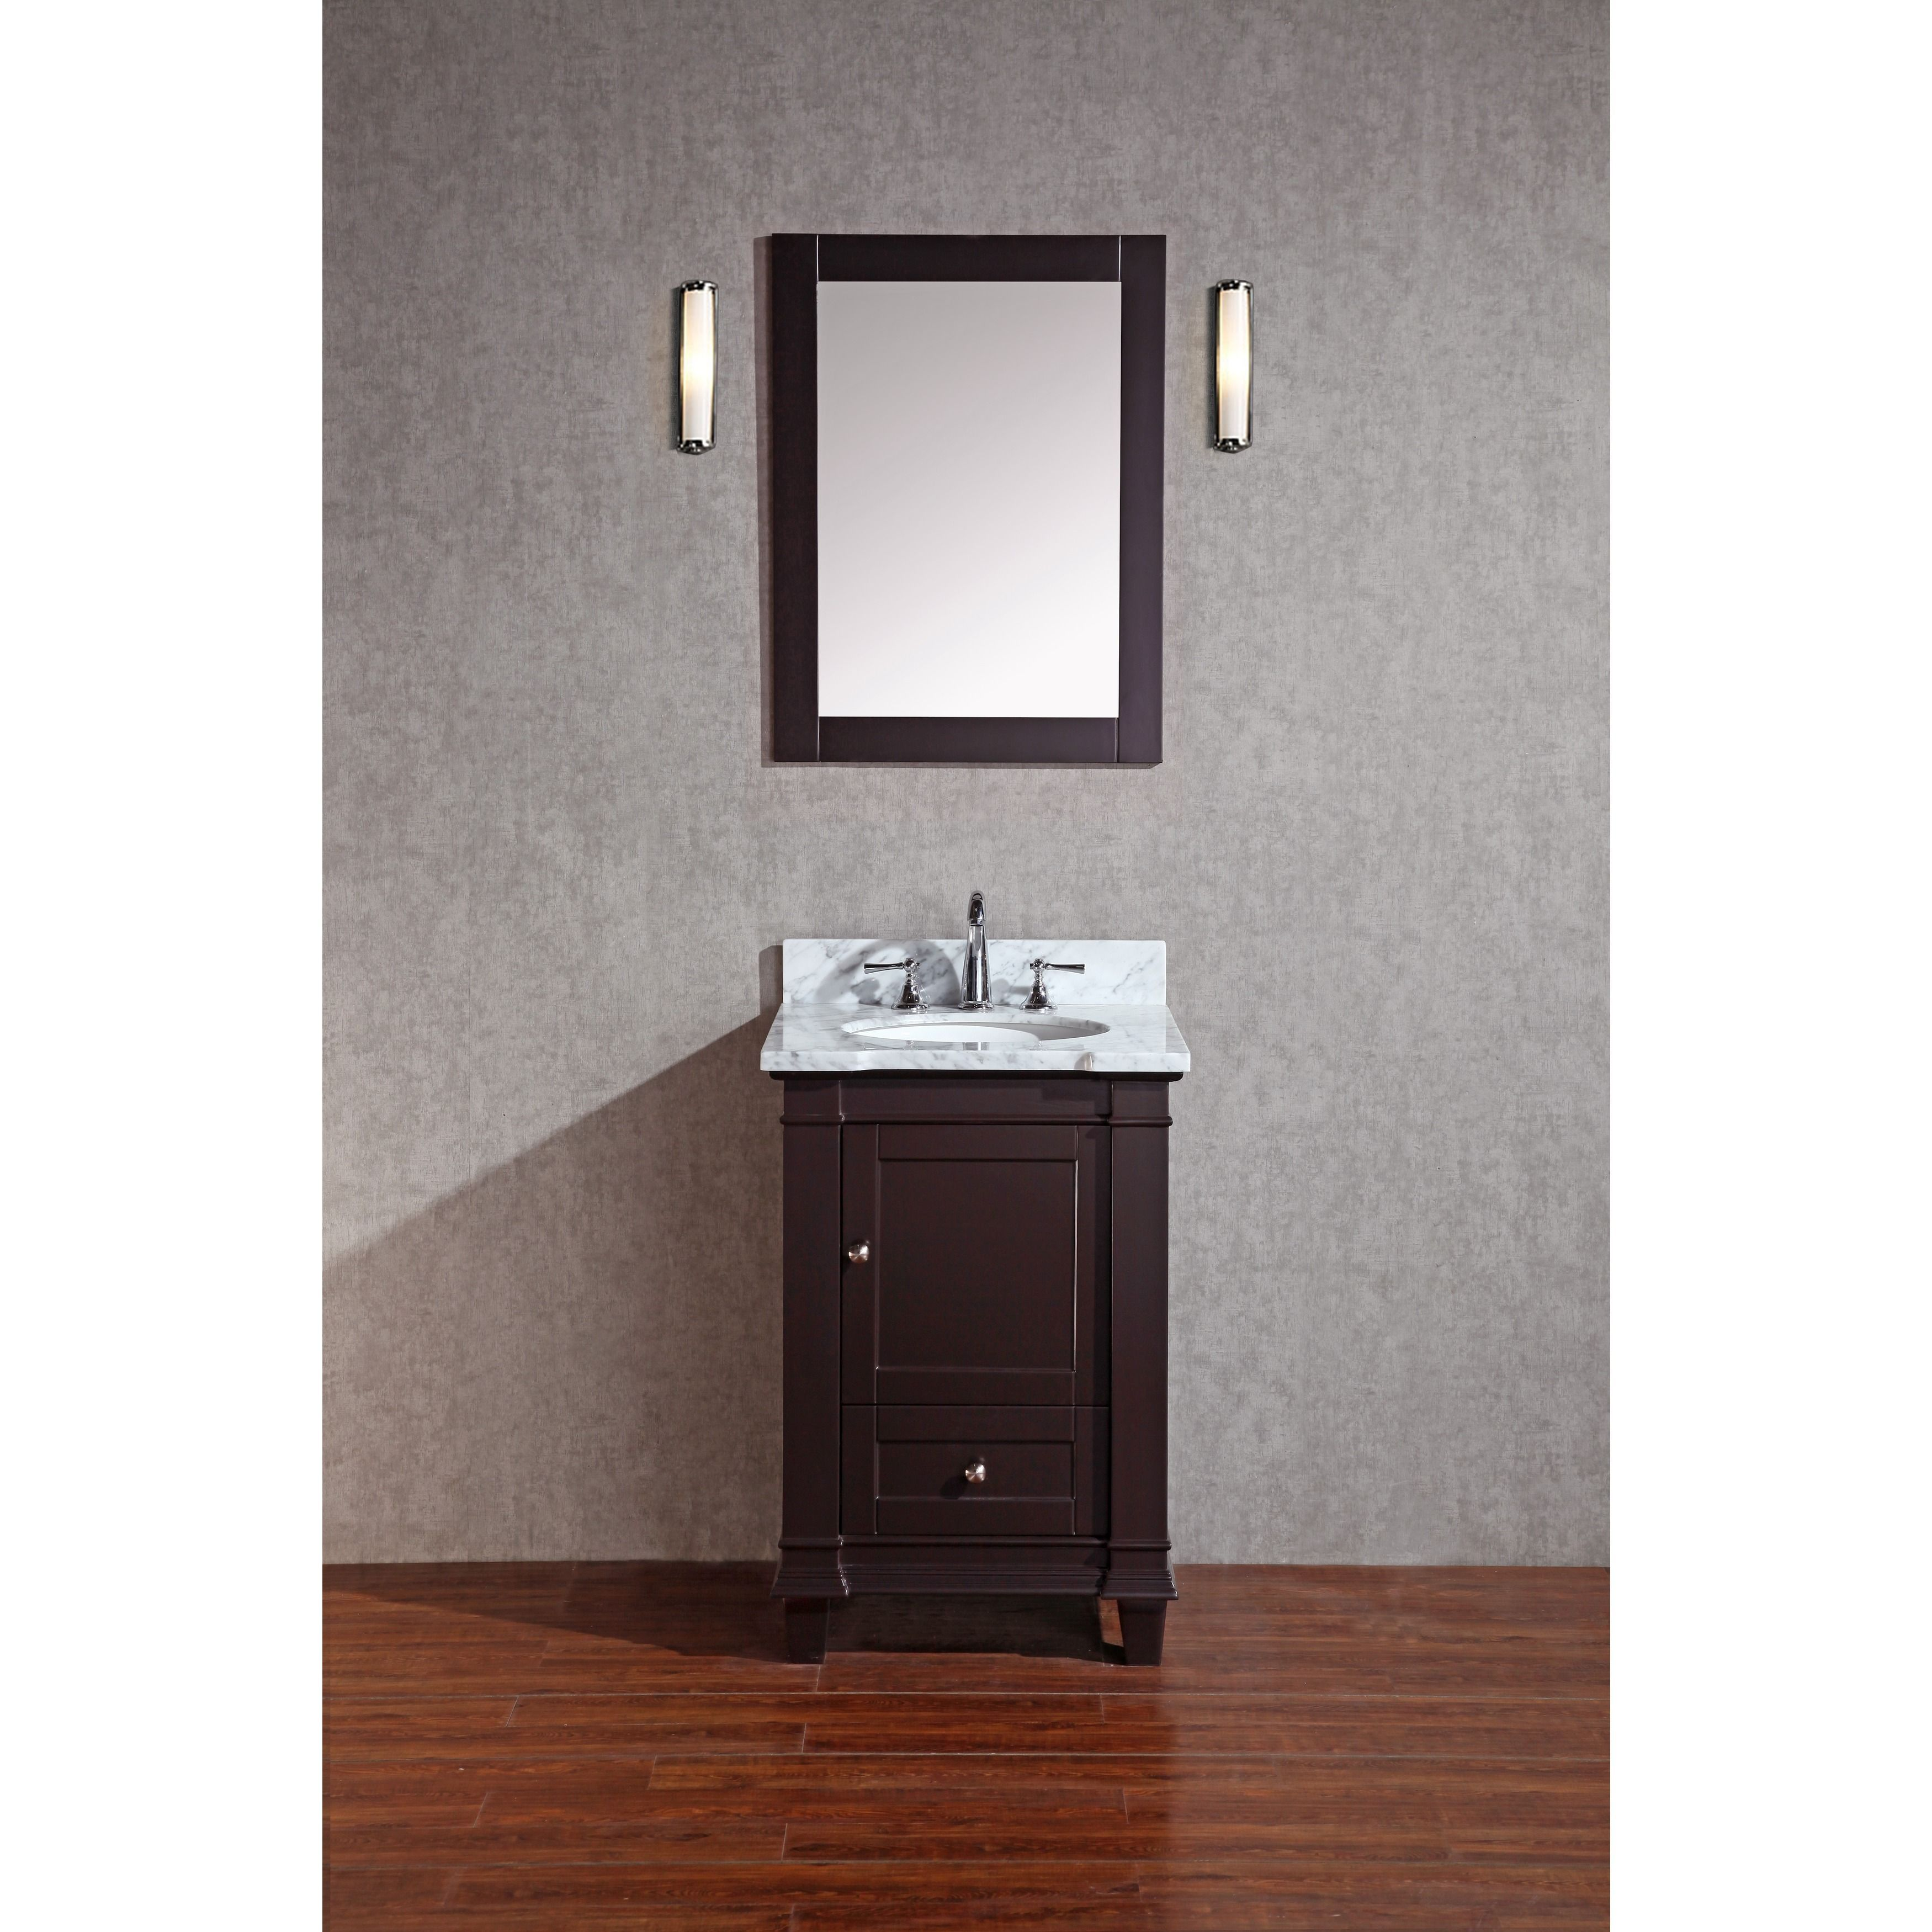 practical trading home white vanity daisy inch ak options bathroom